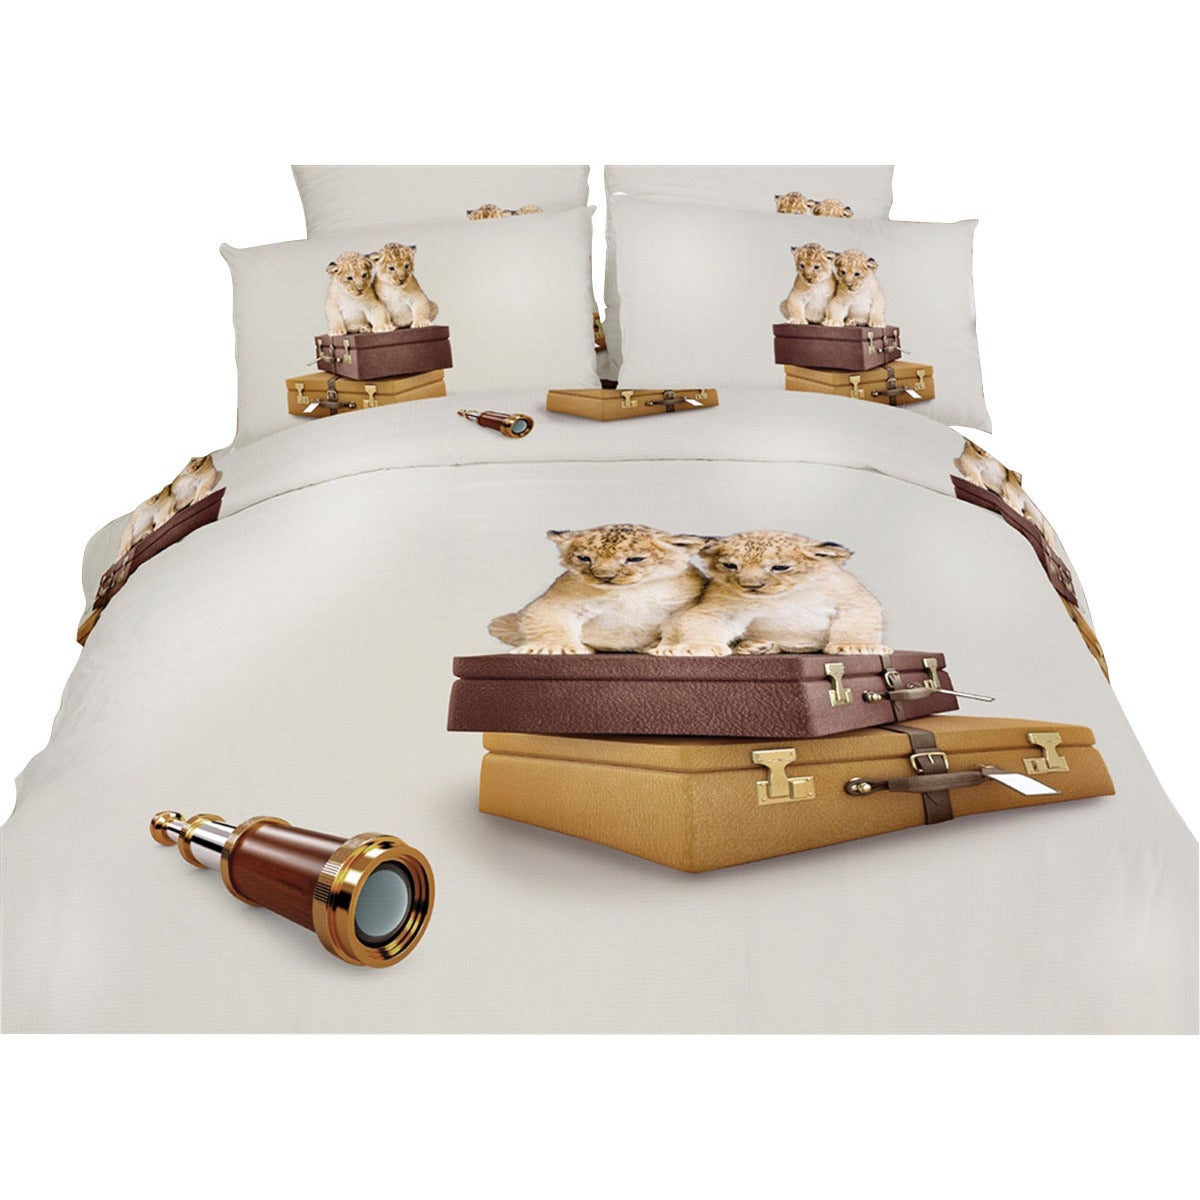 Dolce Mela Best Friends Cotton Bedding Duvet Cover And Sheet Set Free Shipping Today 14821877